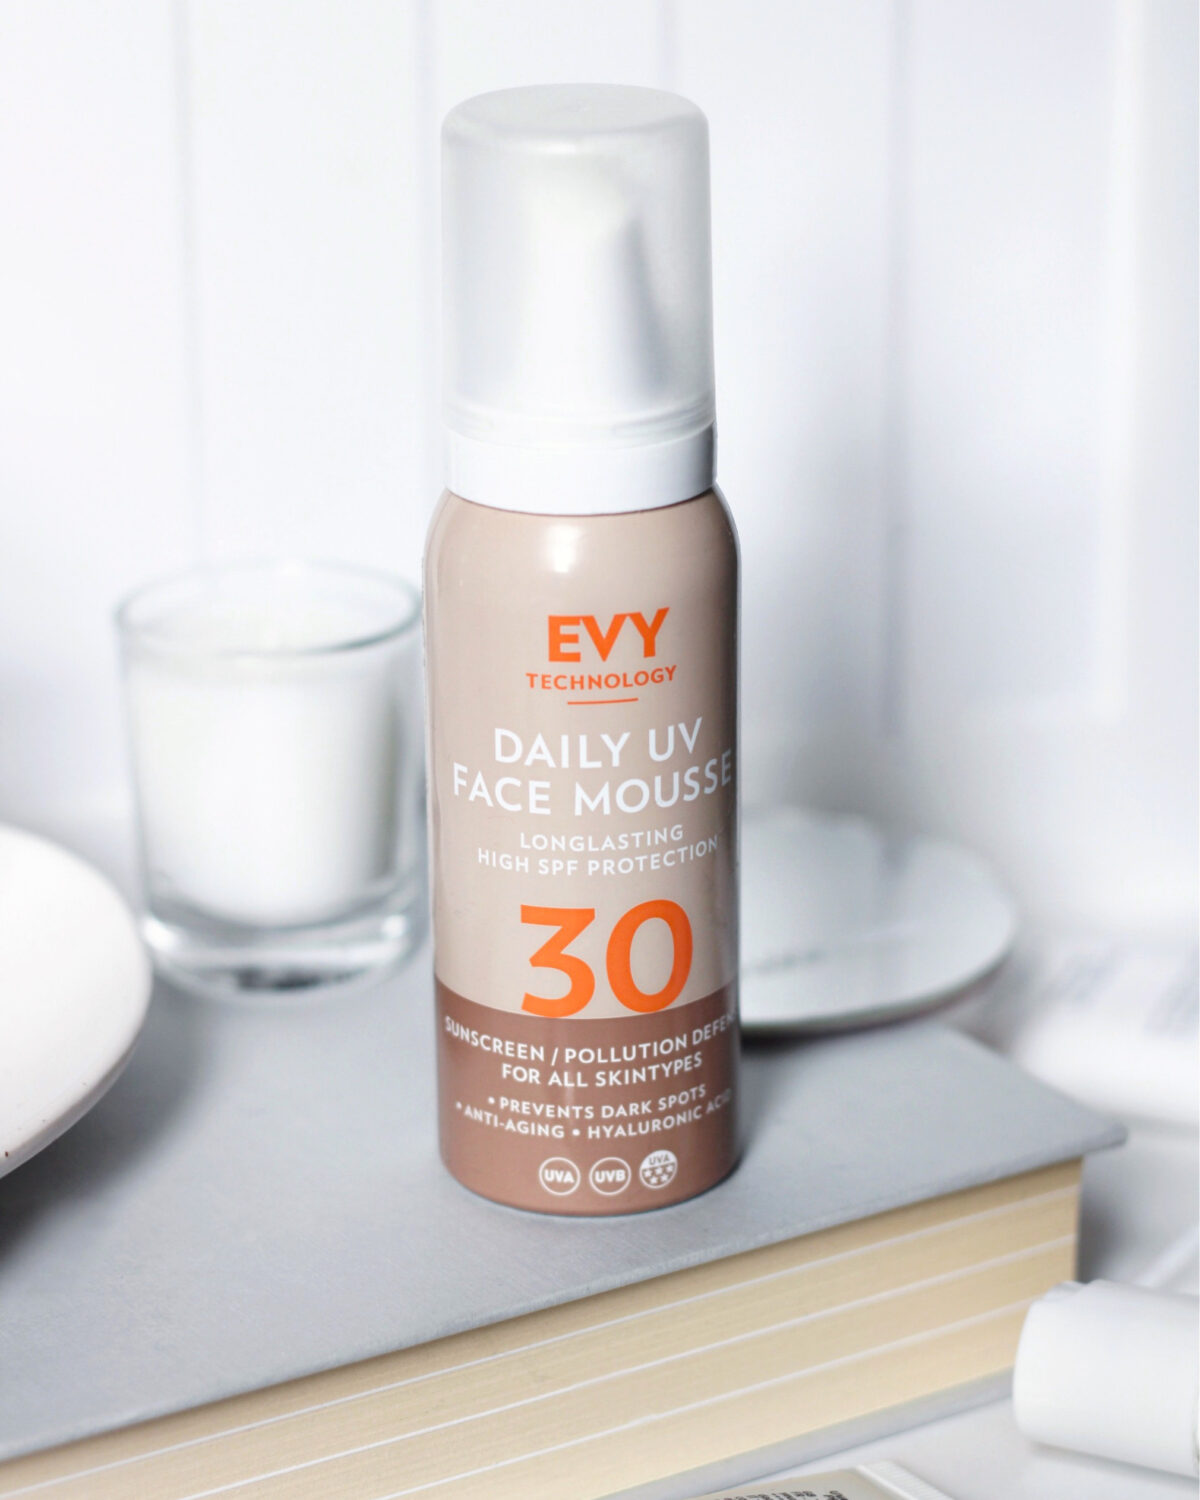 UV Daily Mousse Evy Technology